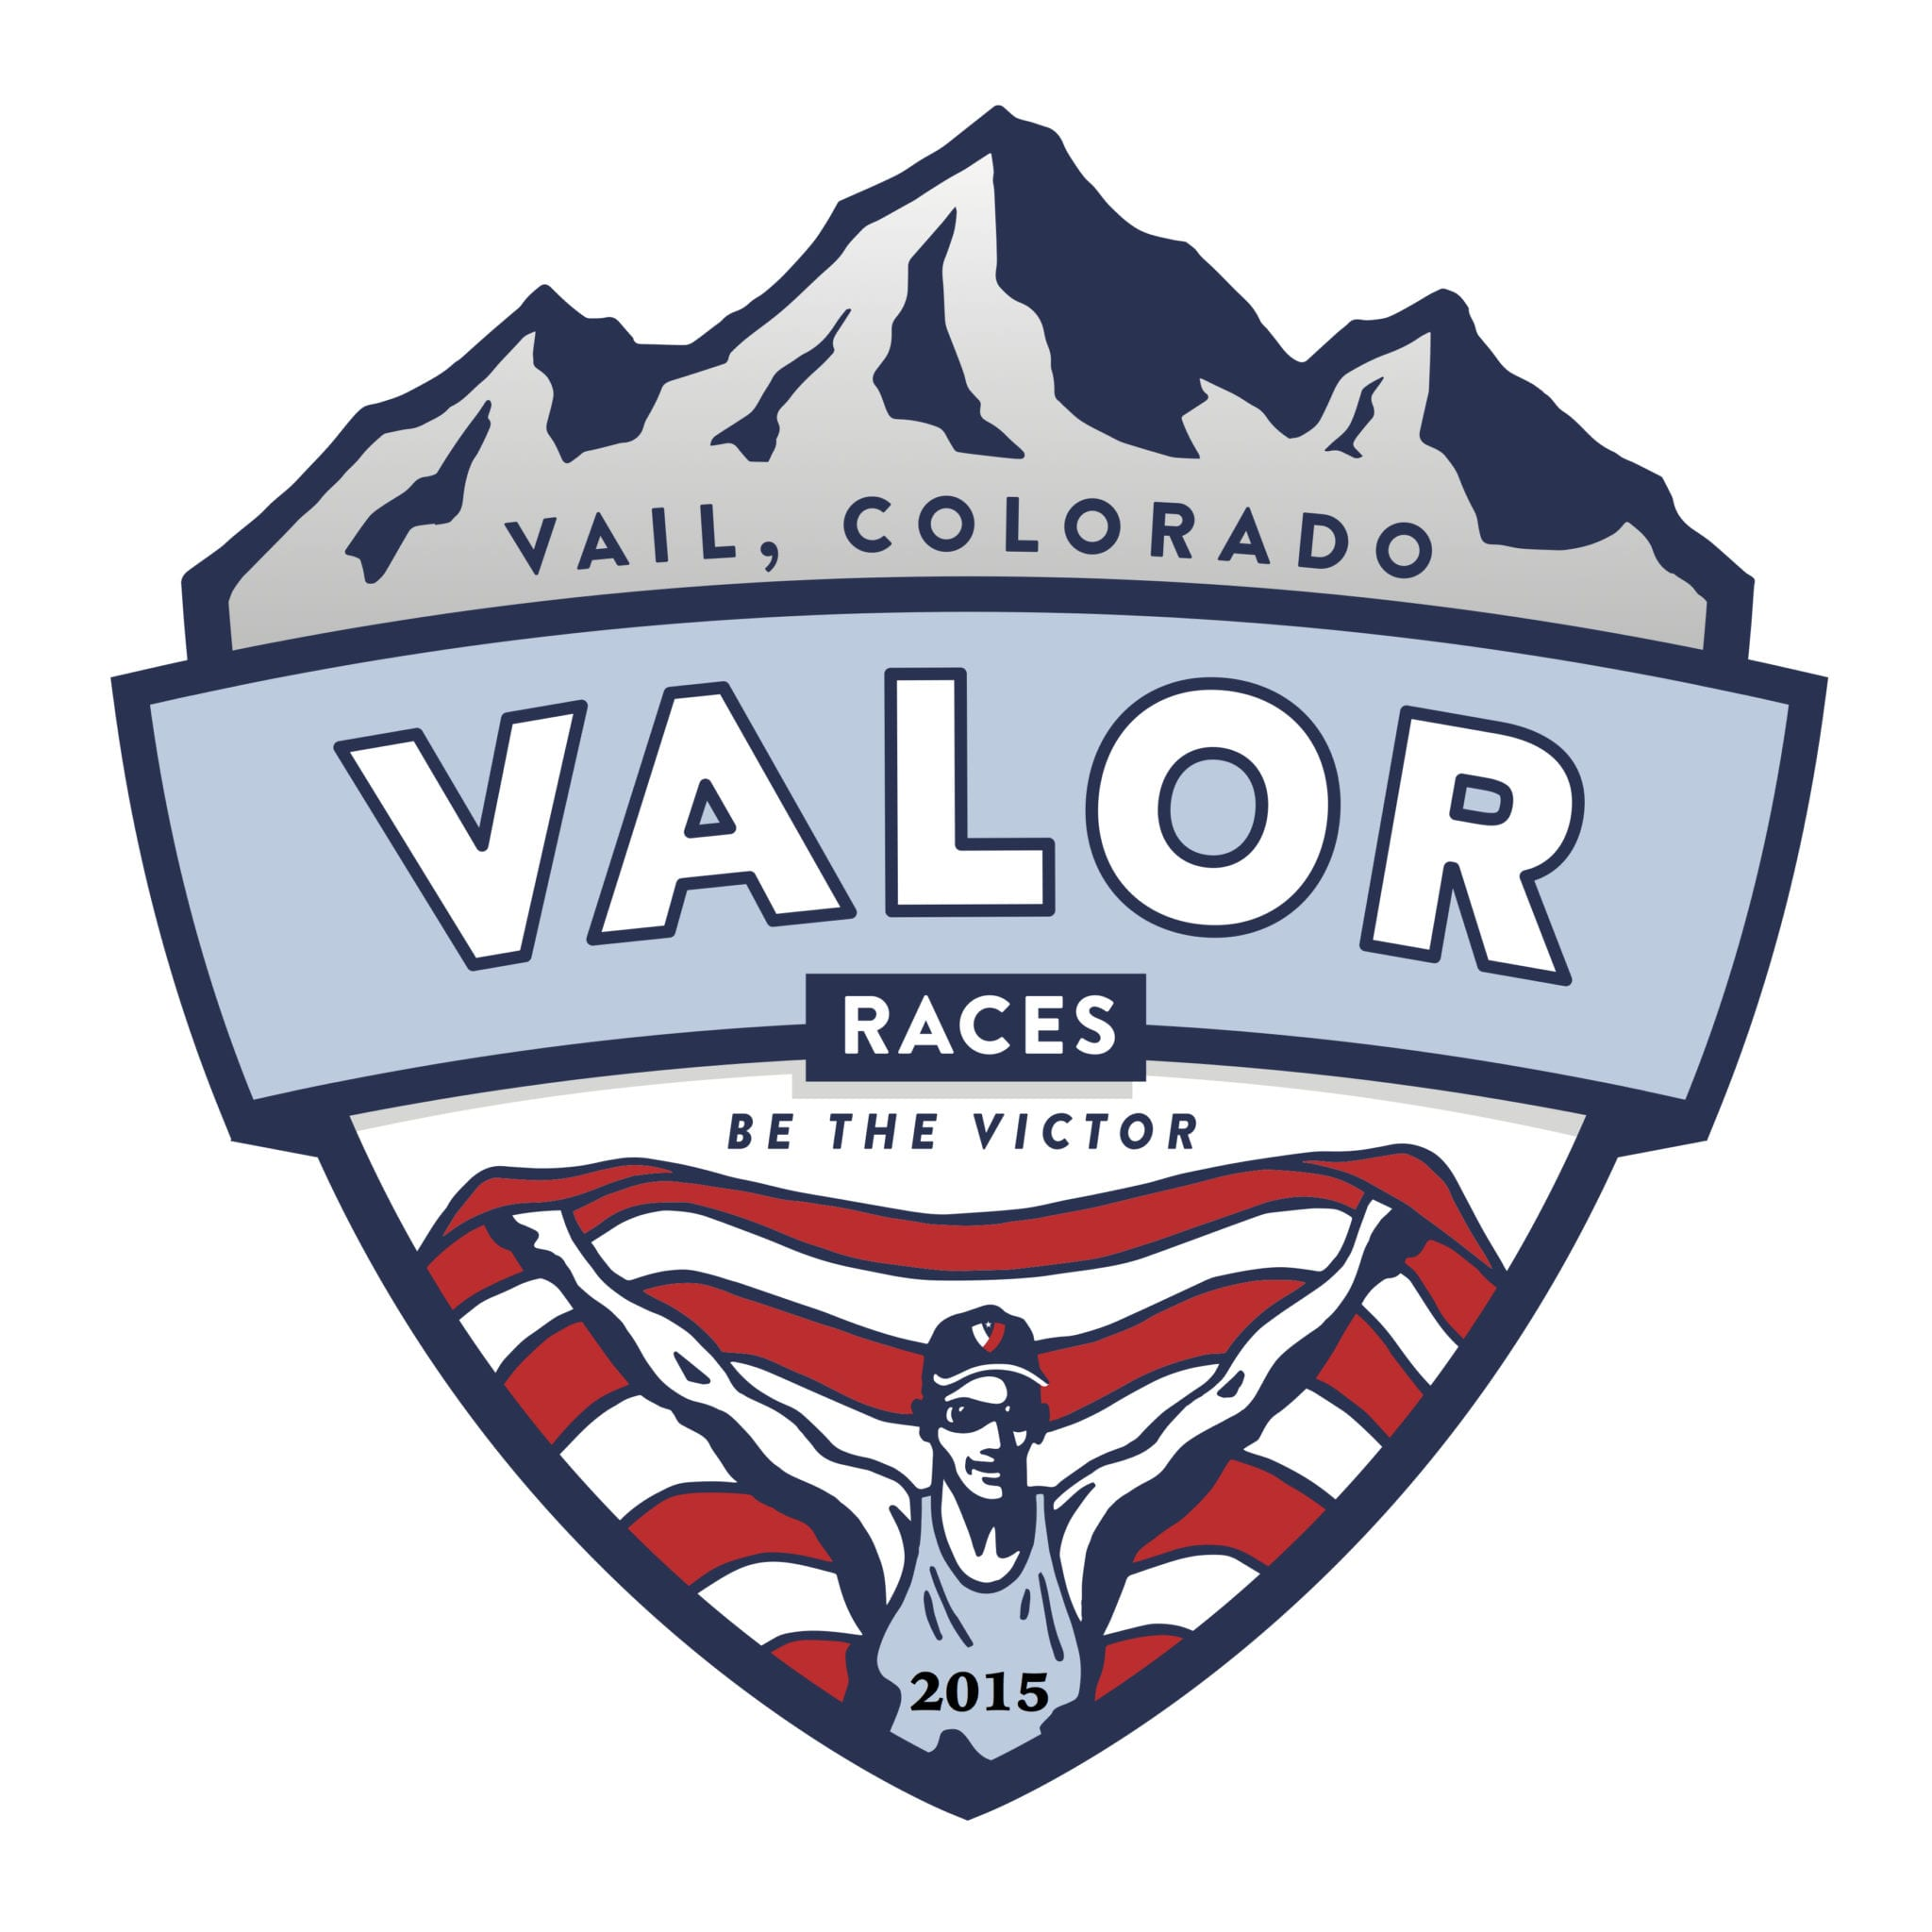 Vail Valor Races logo on RaceRaves